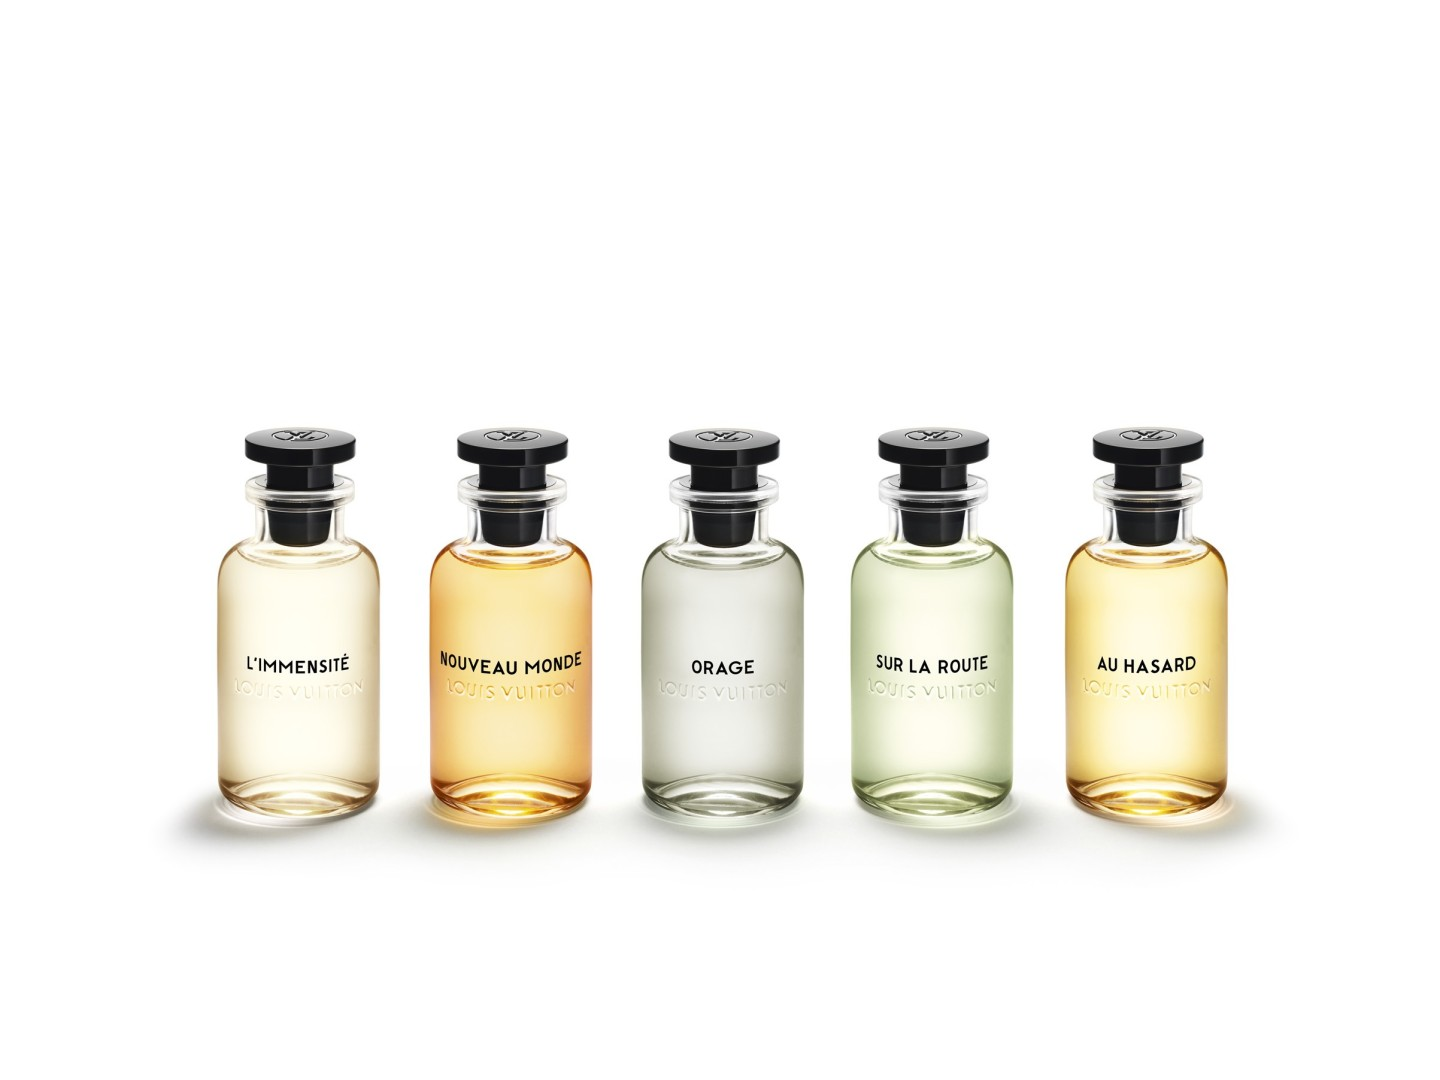 ea92f5dae19 Louis Vuitton launches its first fragrance range for men